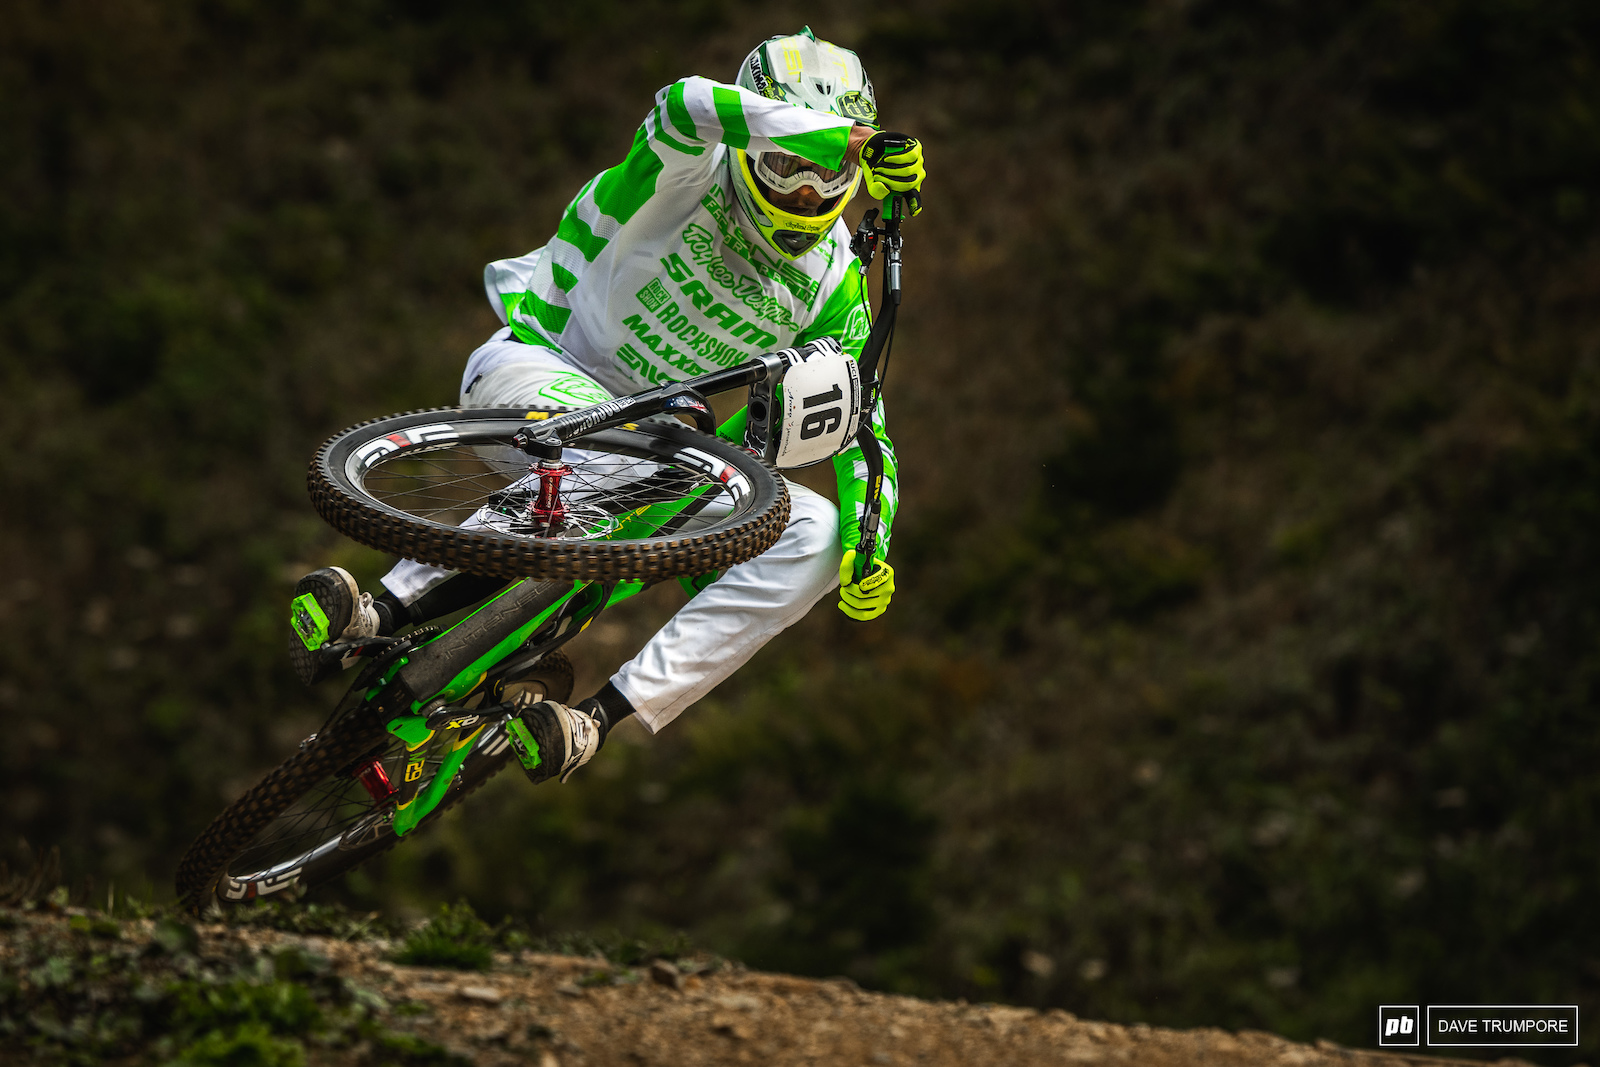 All the style for Jack Moir over the big table top mid track.